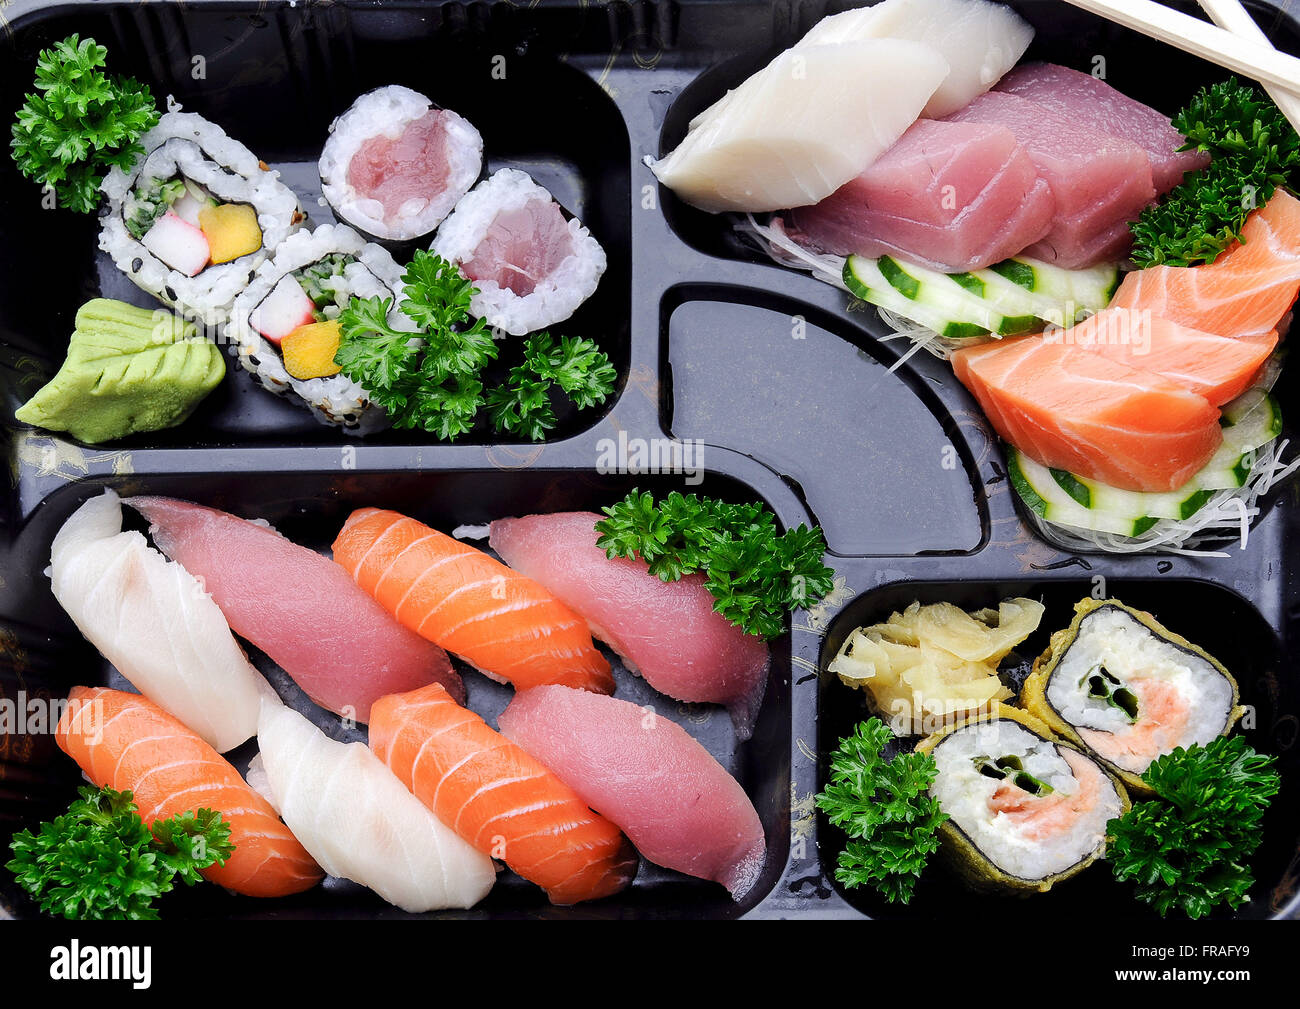 Japanese food - sushi and sashimi combination in restaurant - Stock Image